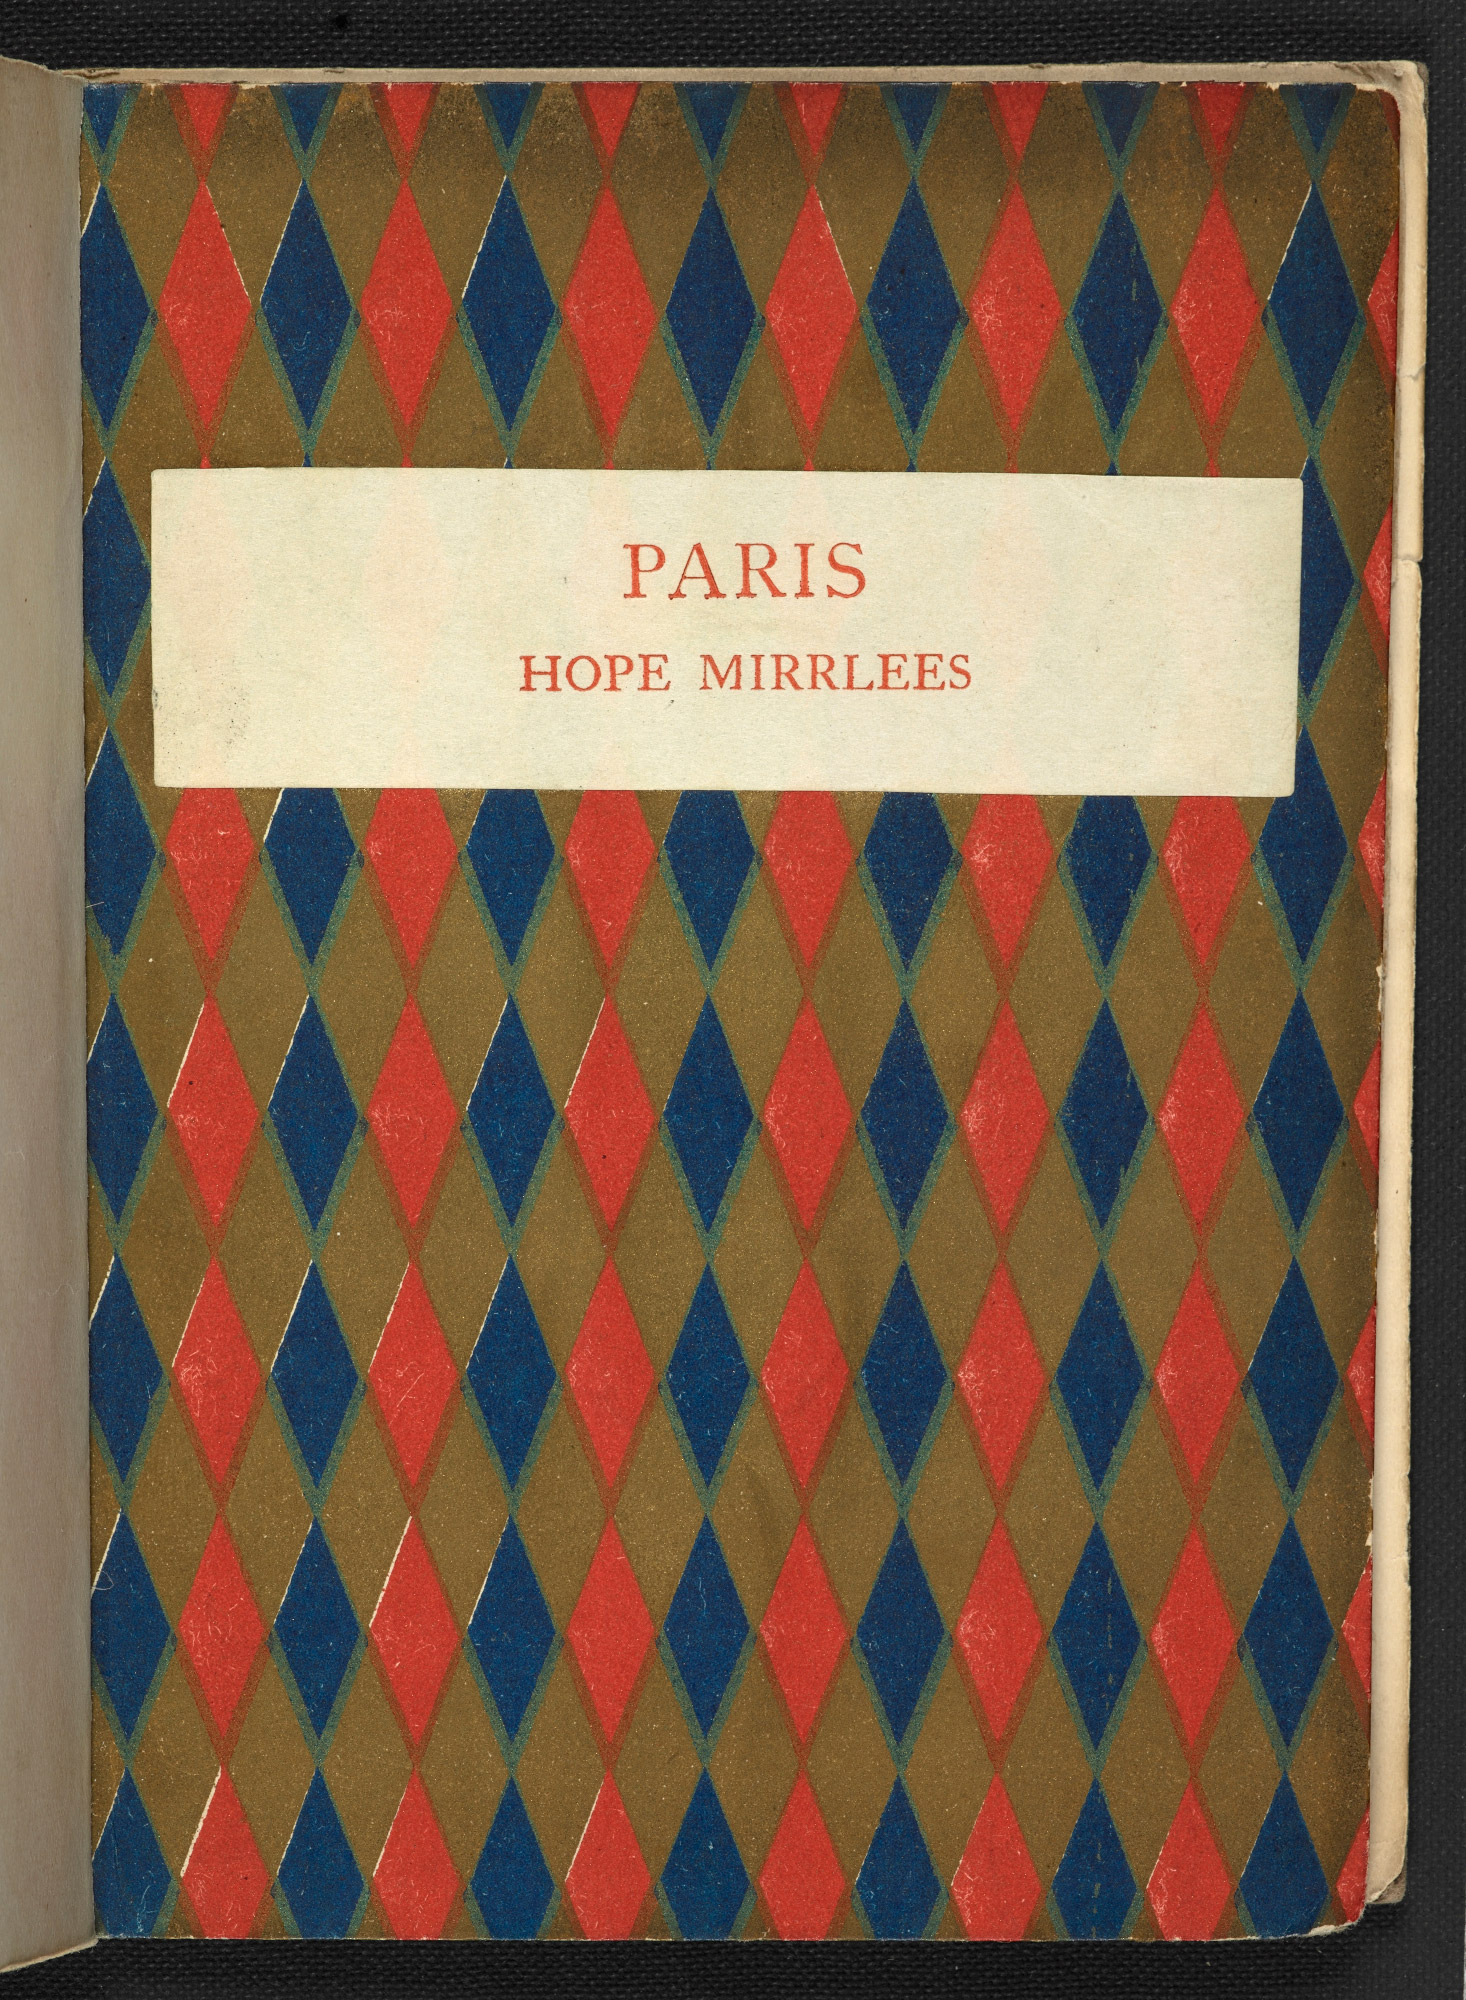 Paris by Hope Mirrlees